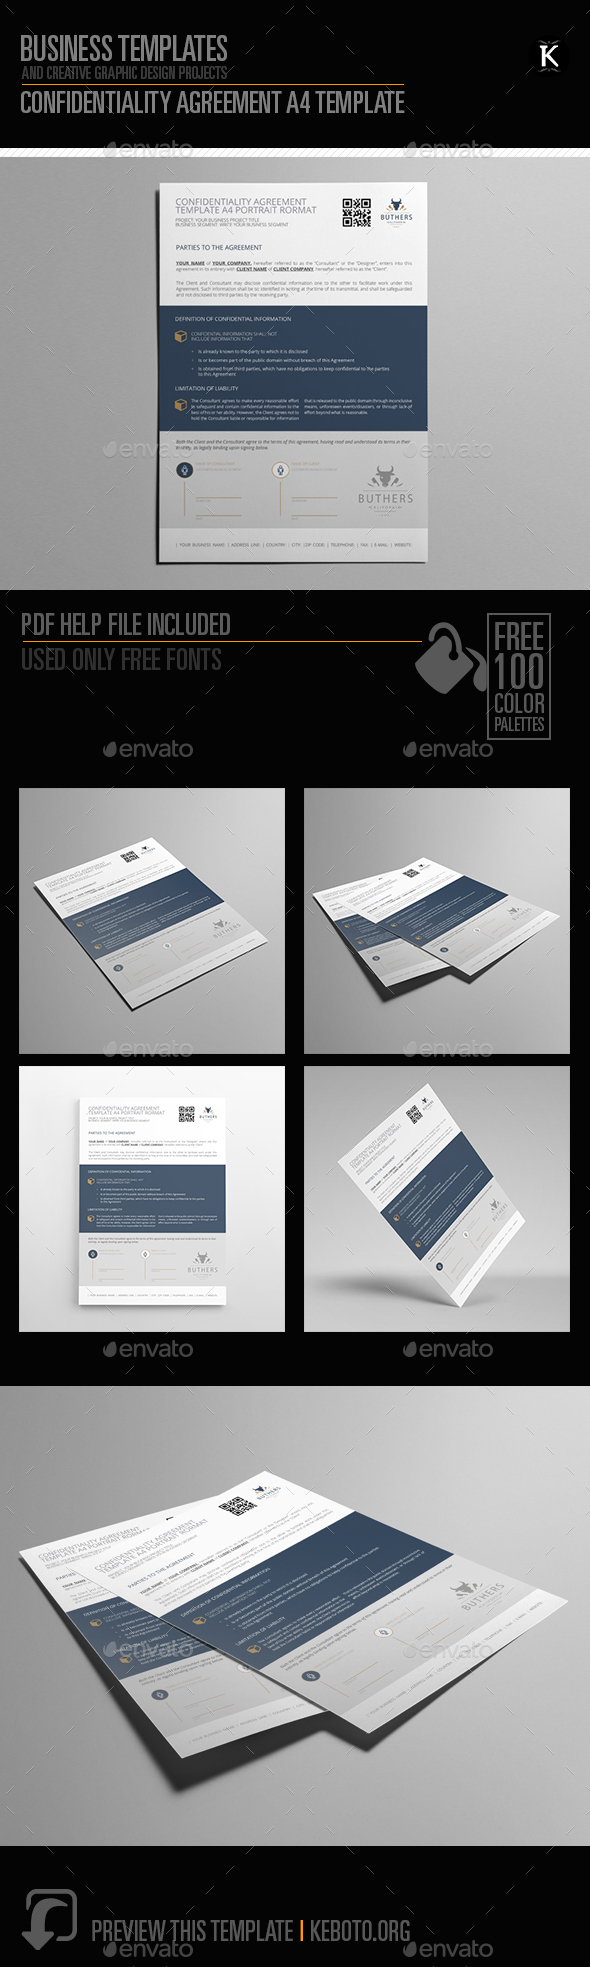 Confidentiality Agreement A4 Template - Miscellaneous Print Templates